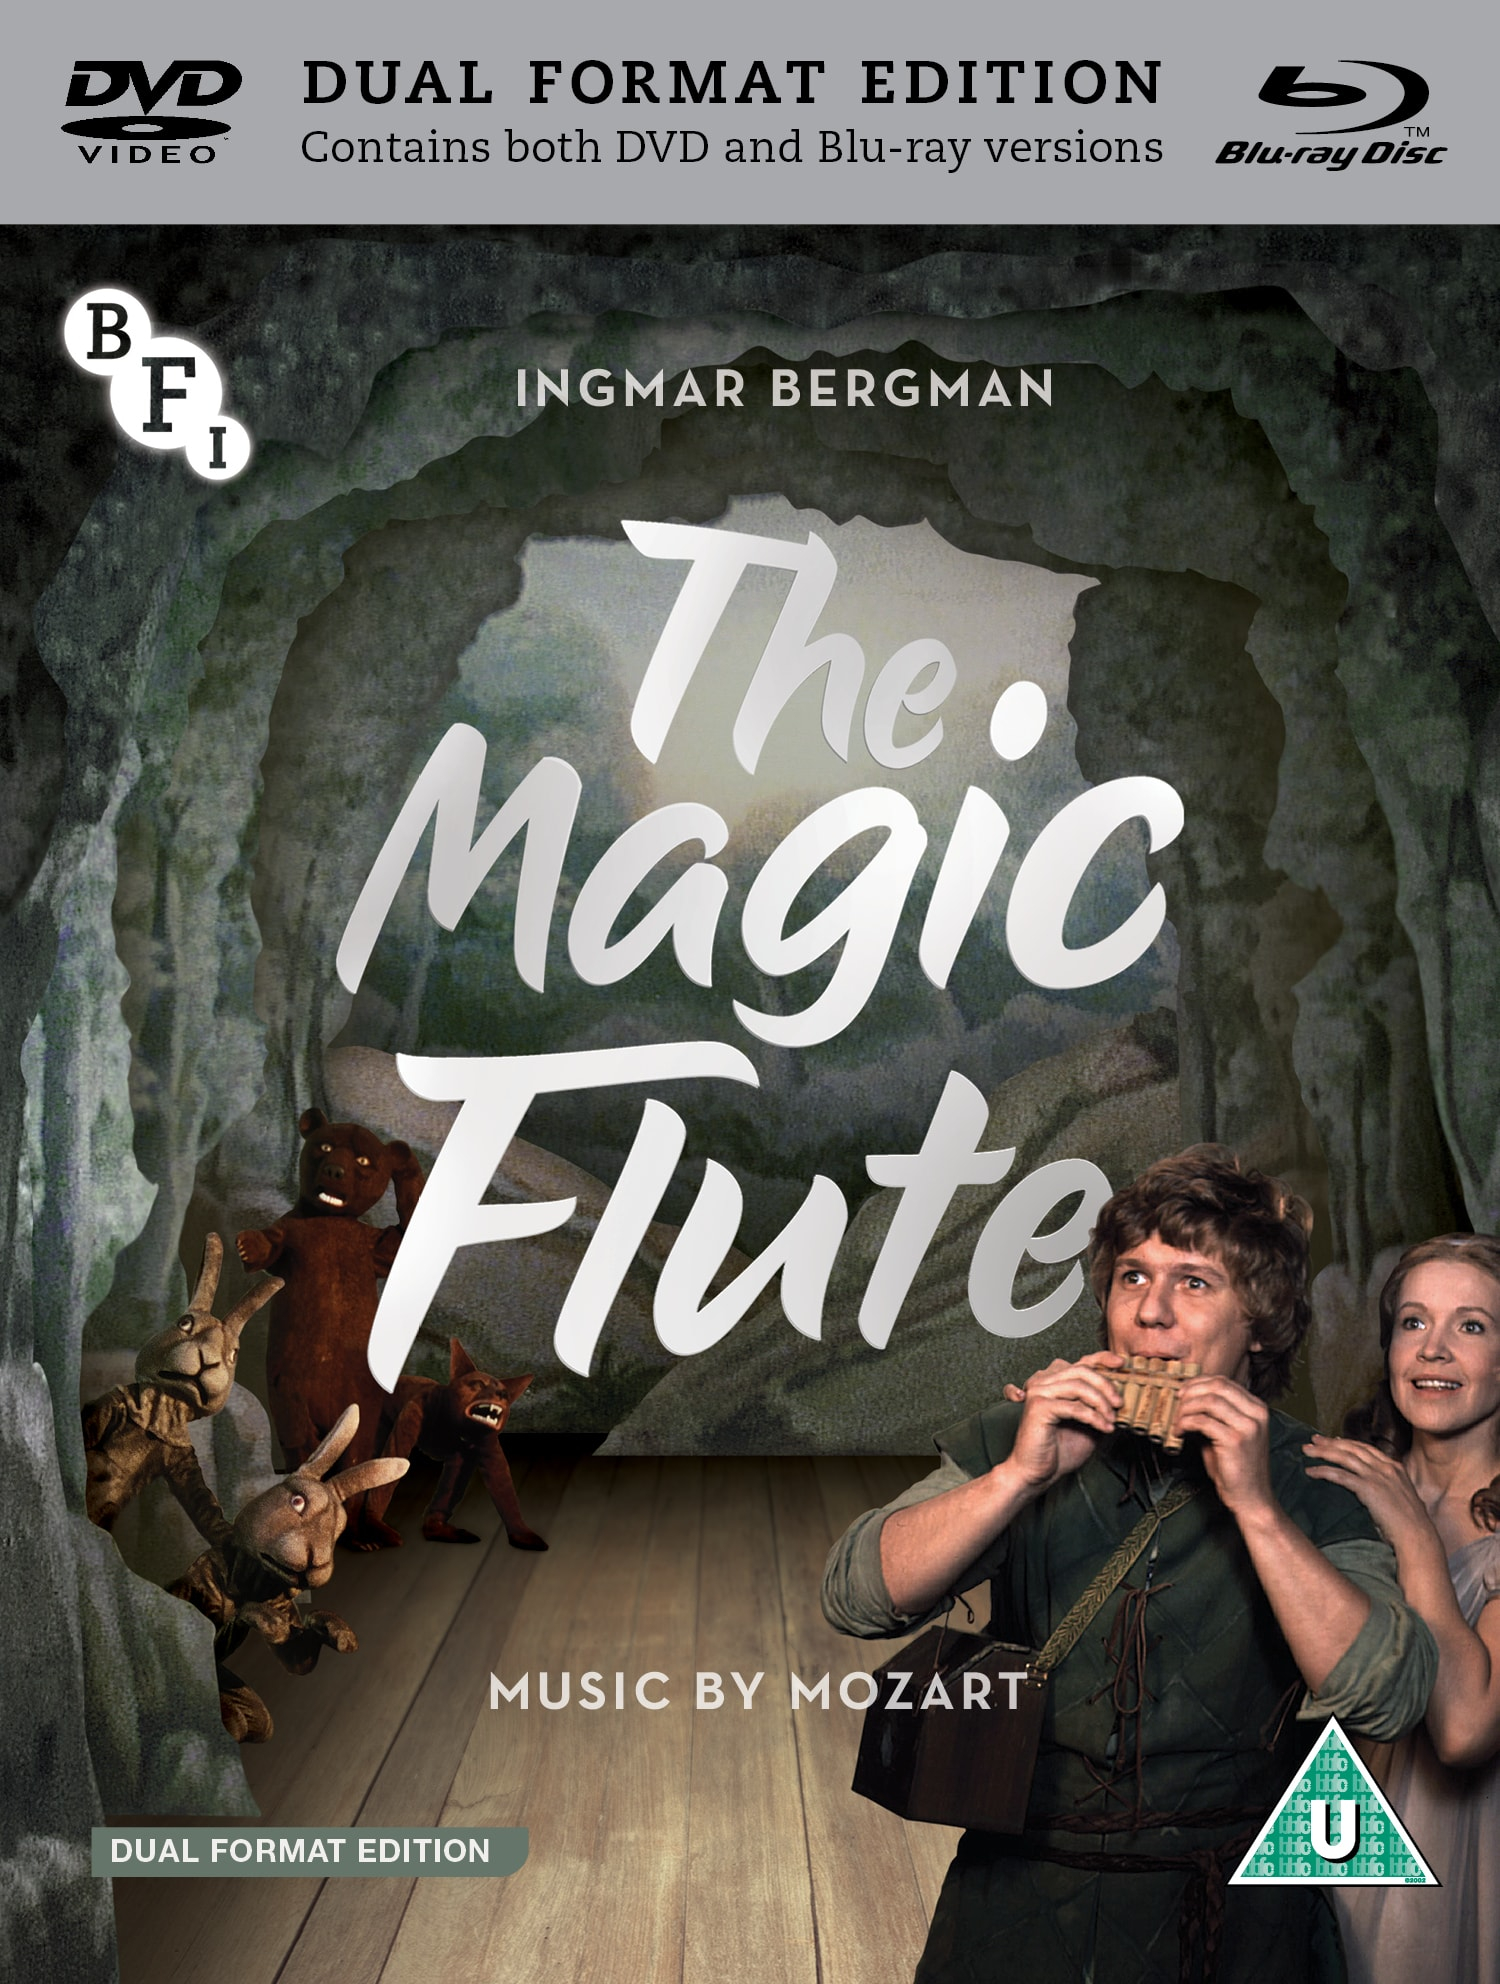 Buy The Magic Flute (Dual Format Edition)